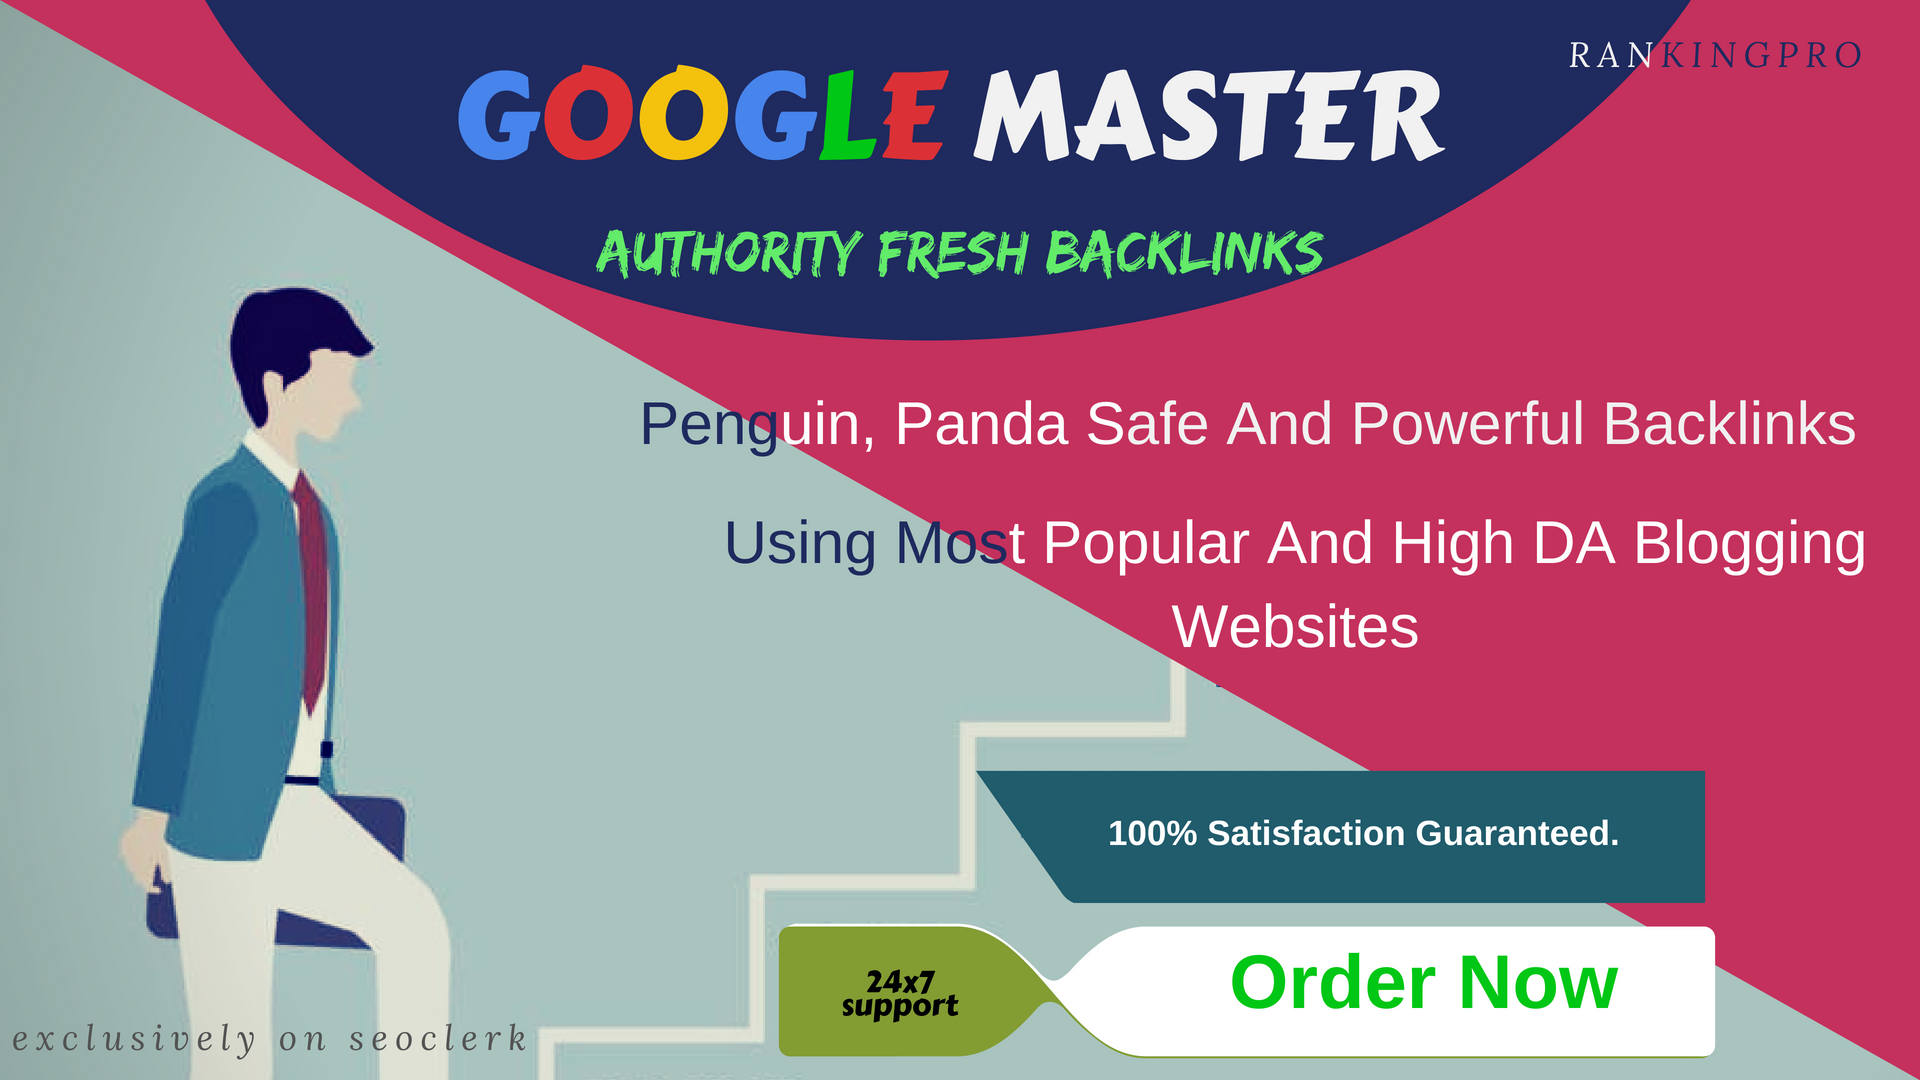 Google Master SEO Full Package Very Easily Rank For Your Site